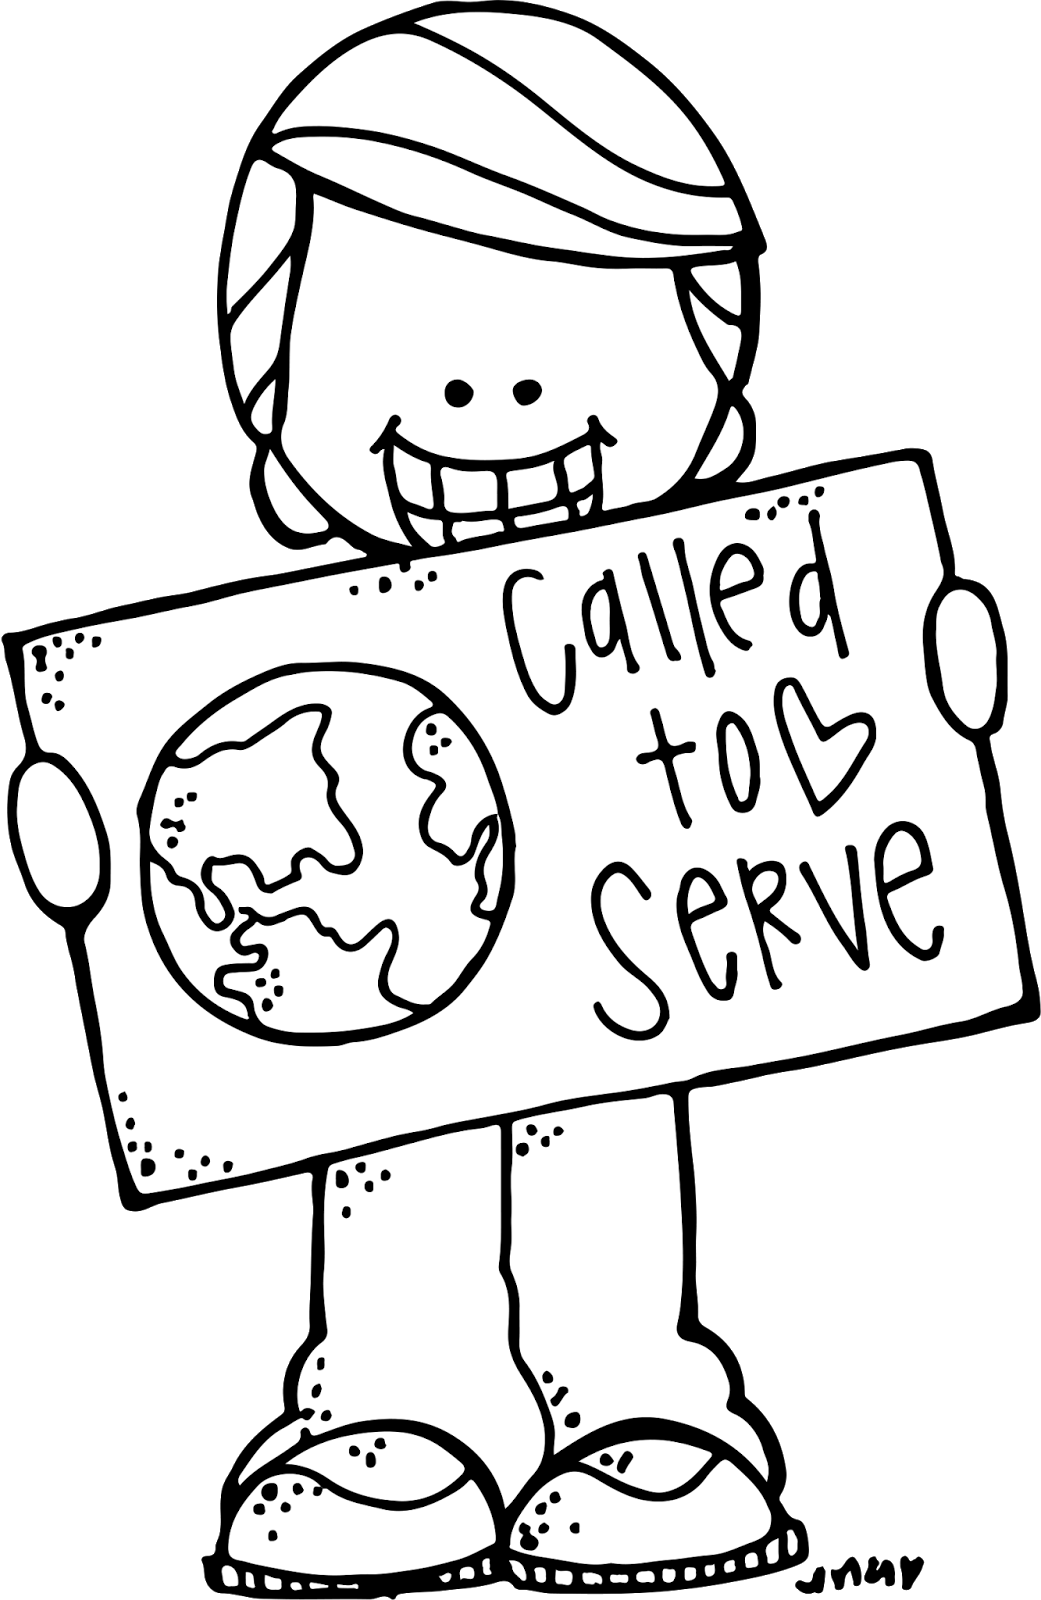 Mission clipart called to serve, Mission called to serve.